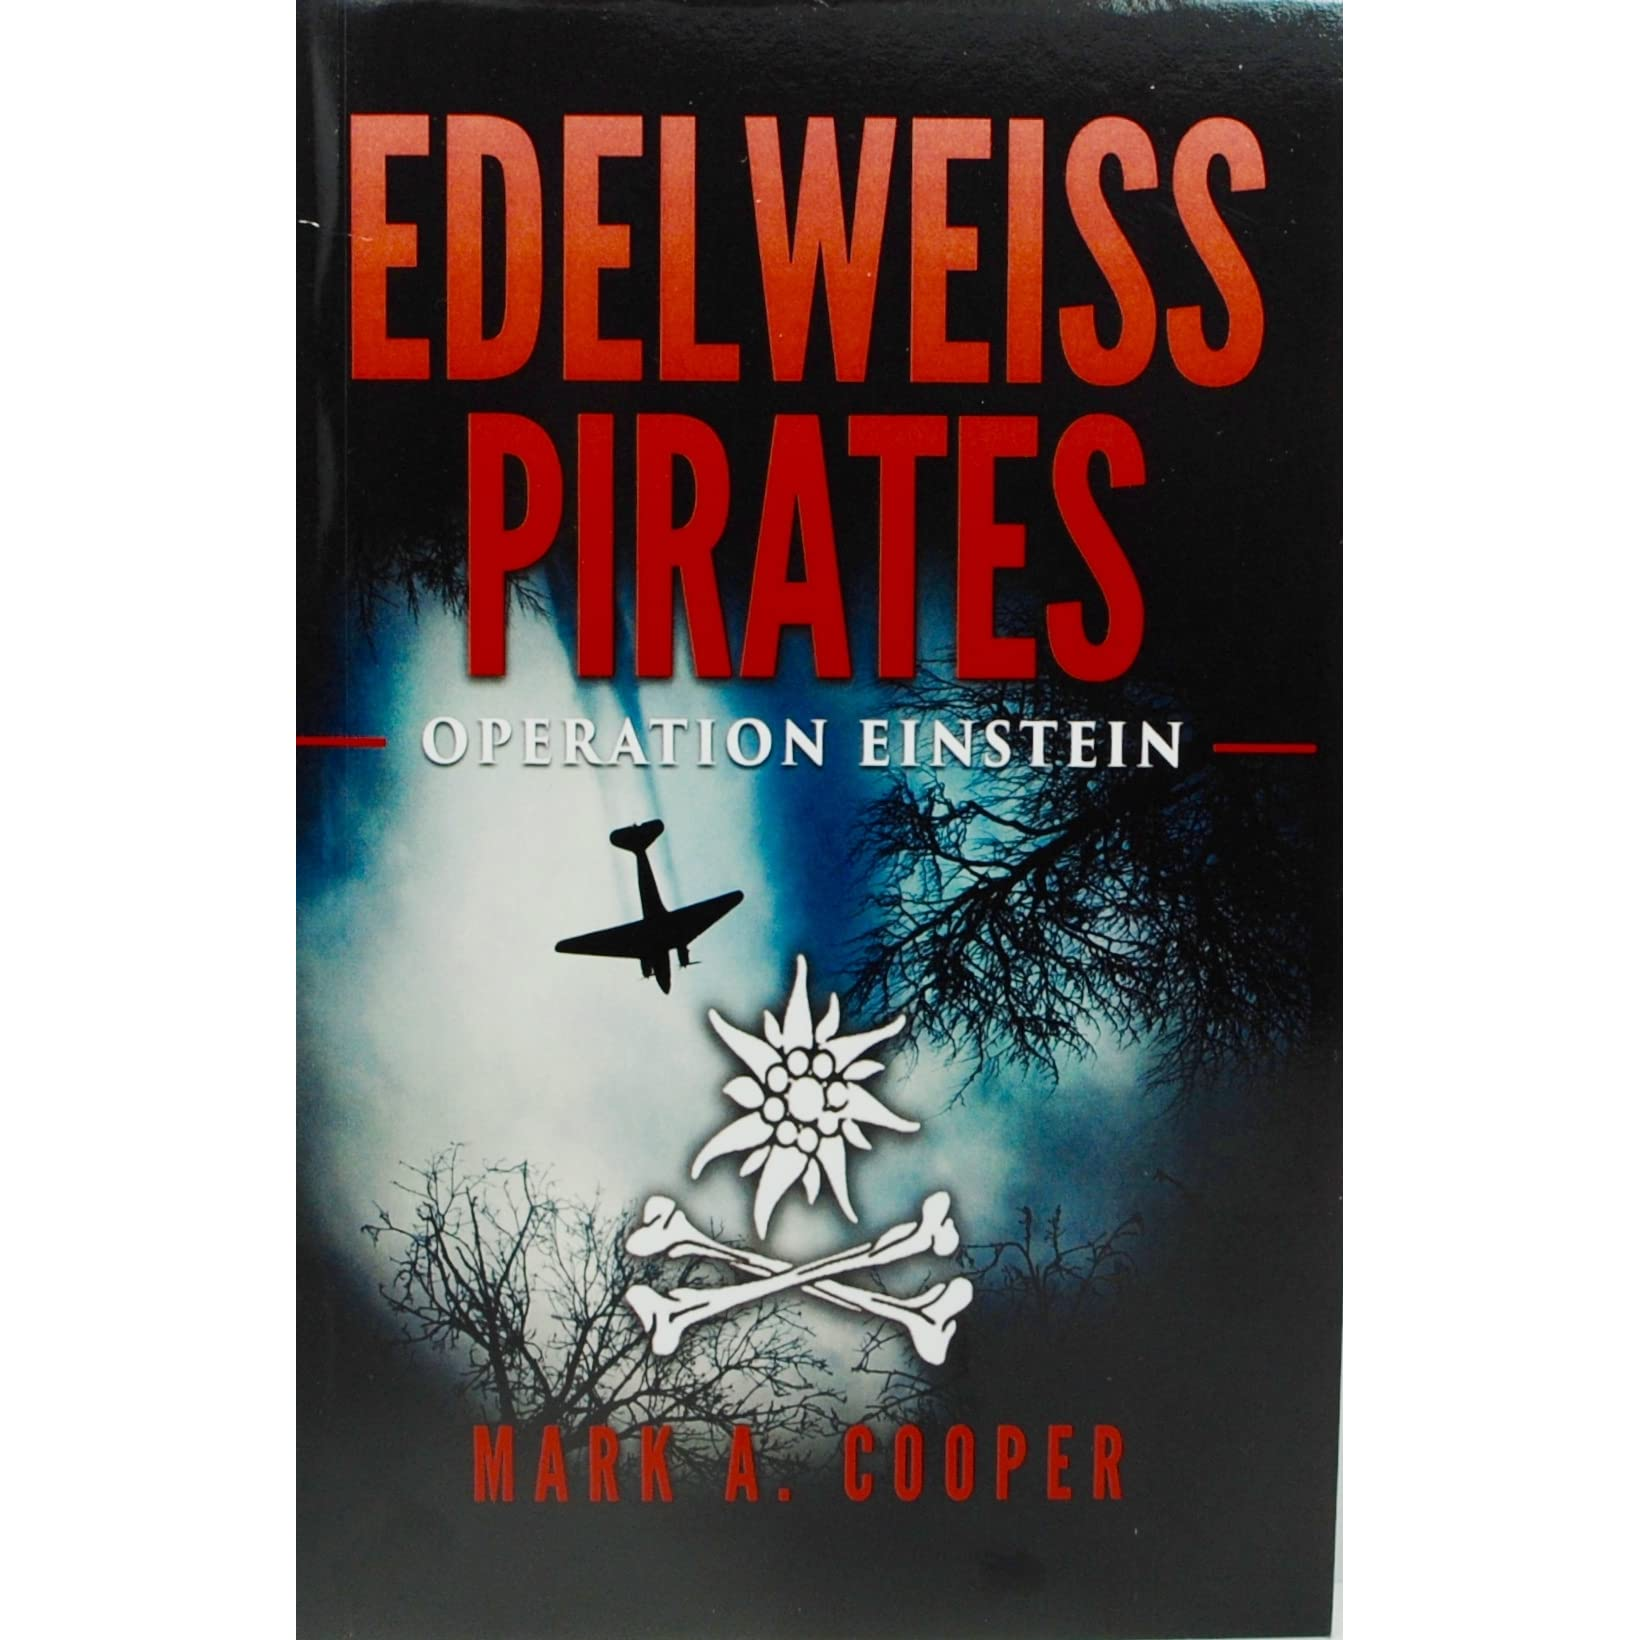 edelweiss pirates operation einstein by mark a cooper edelweiss pirates 1 operation einstein by mark a cooper reviews discussion bookclubs lists